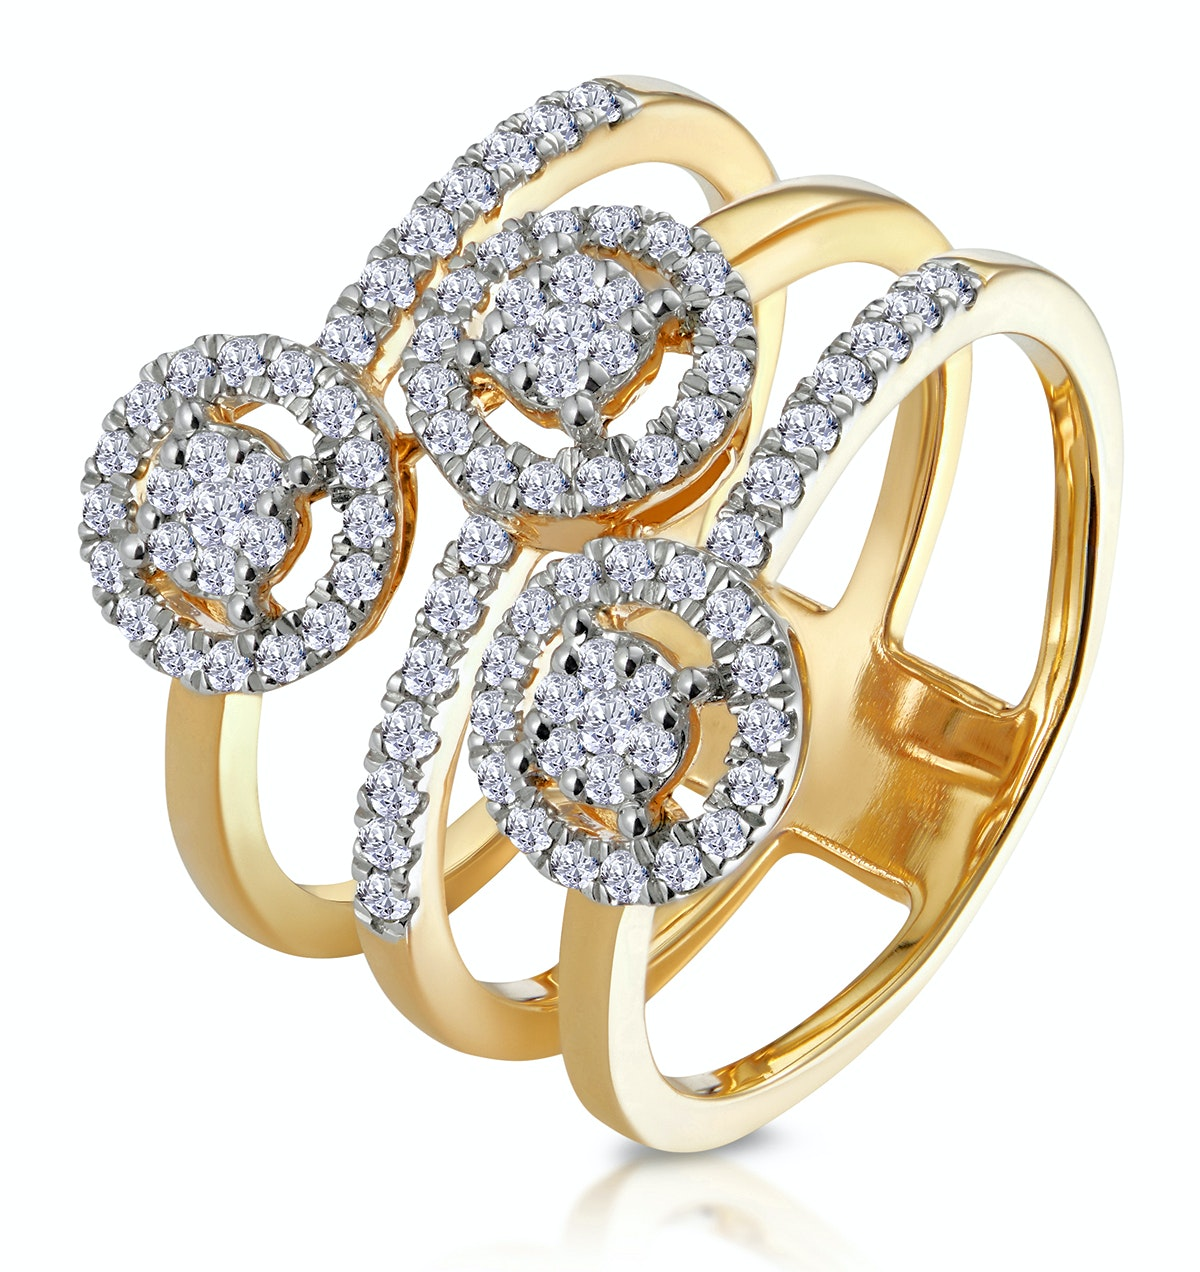 0.55ct Asteria Collection Wide Diamond Halo Ring in 18K Gold